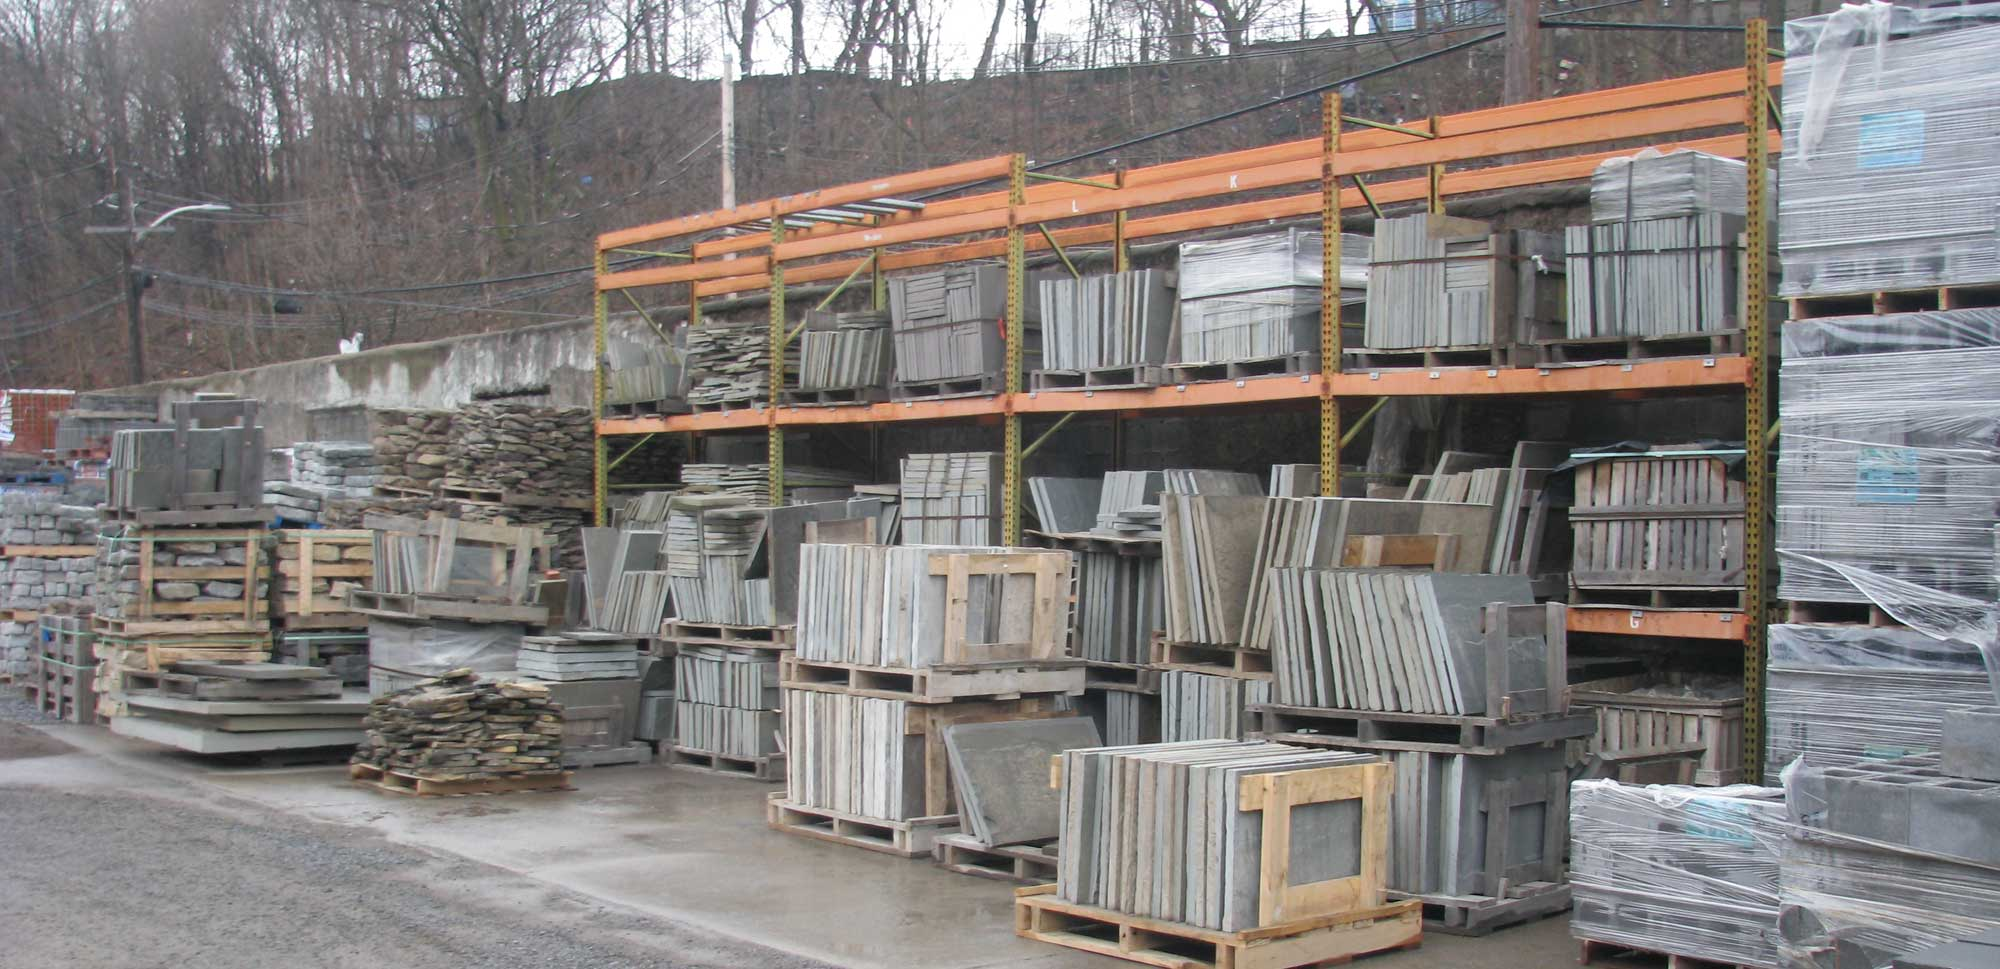 Home Mason Peekskill yard with racks filled with stone products in pallets